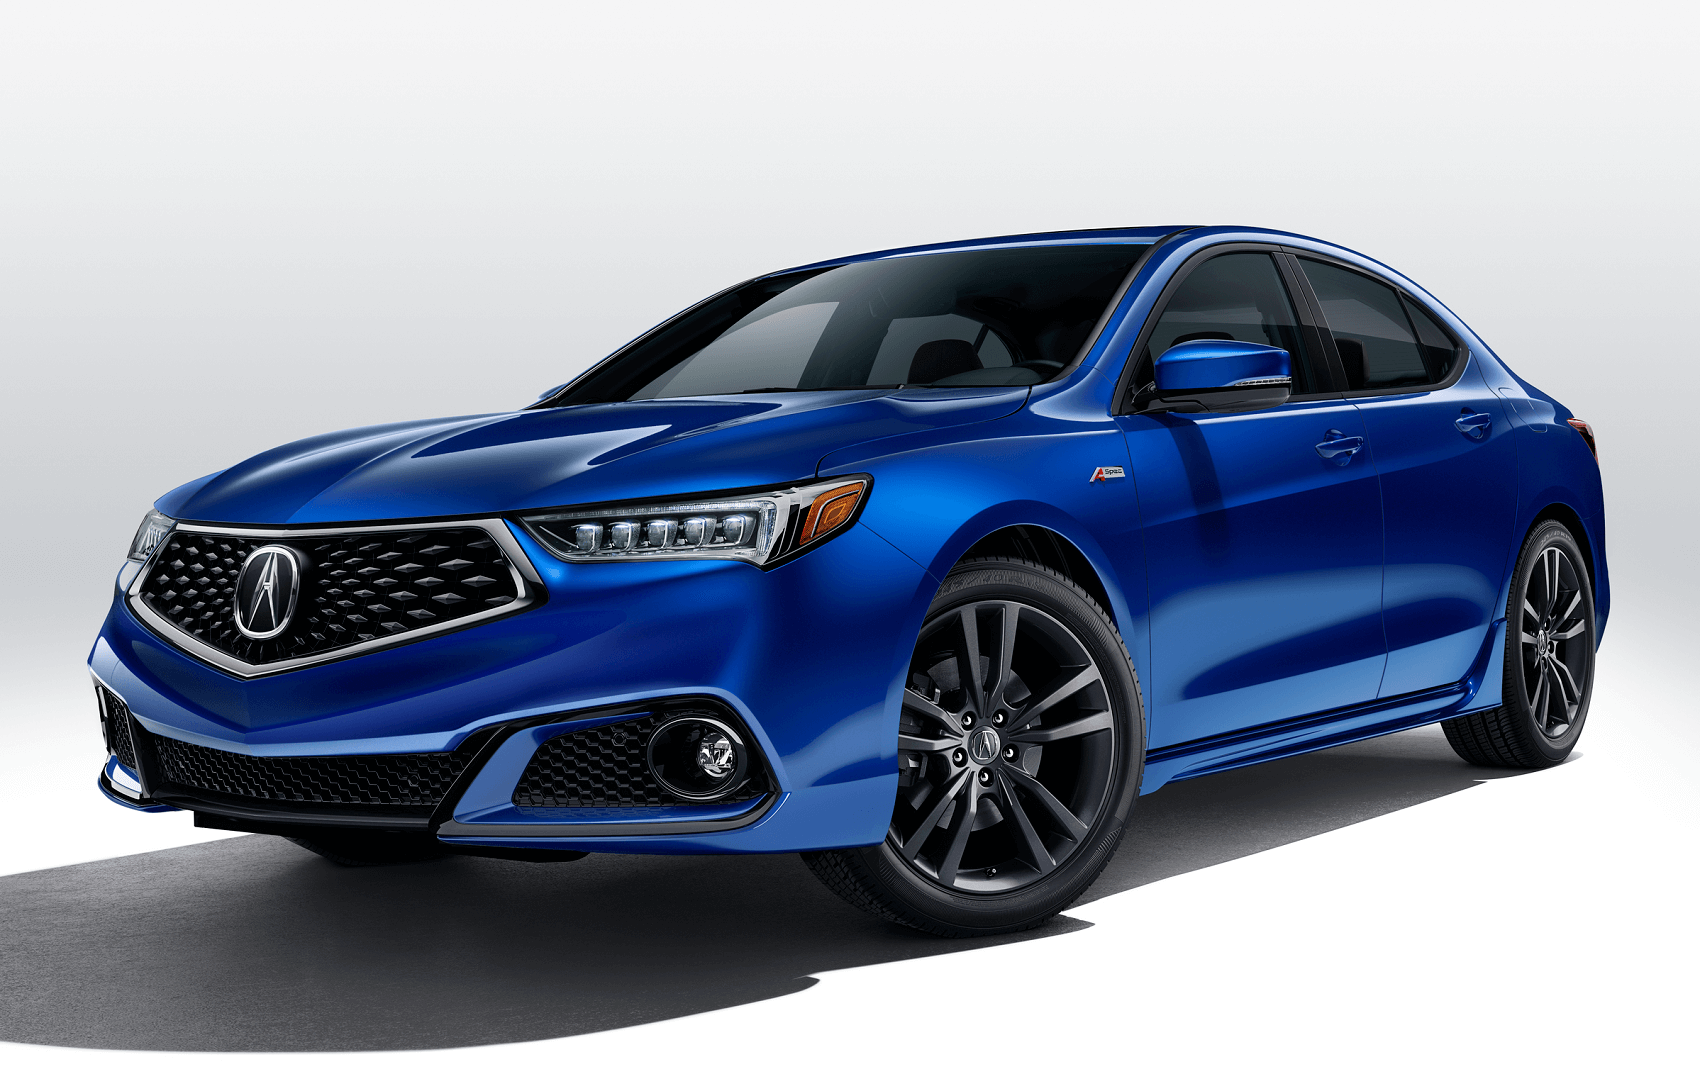 2020 Acura TLX in Blue